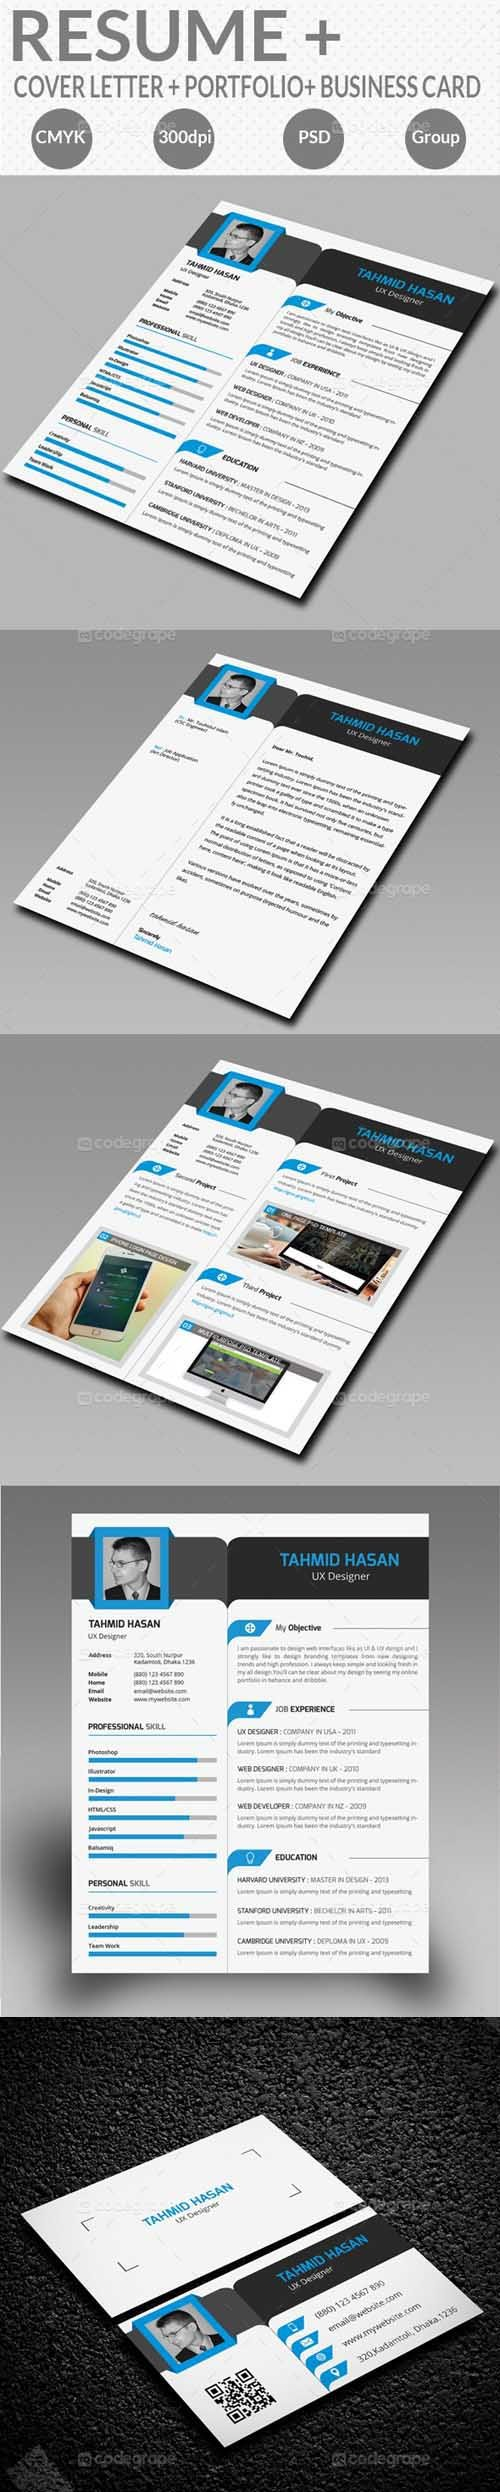 PSD - Resume With Business Card